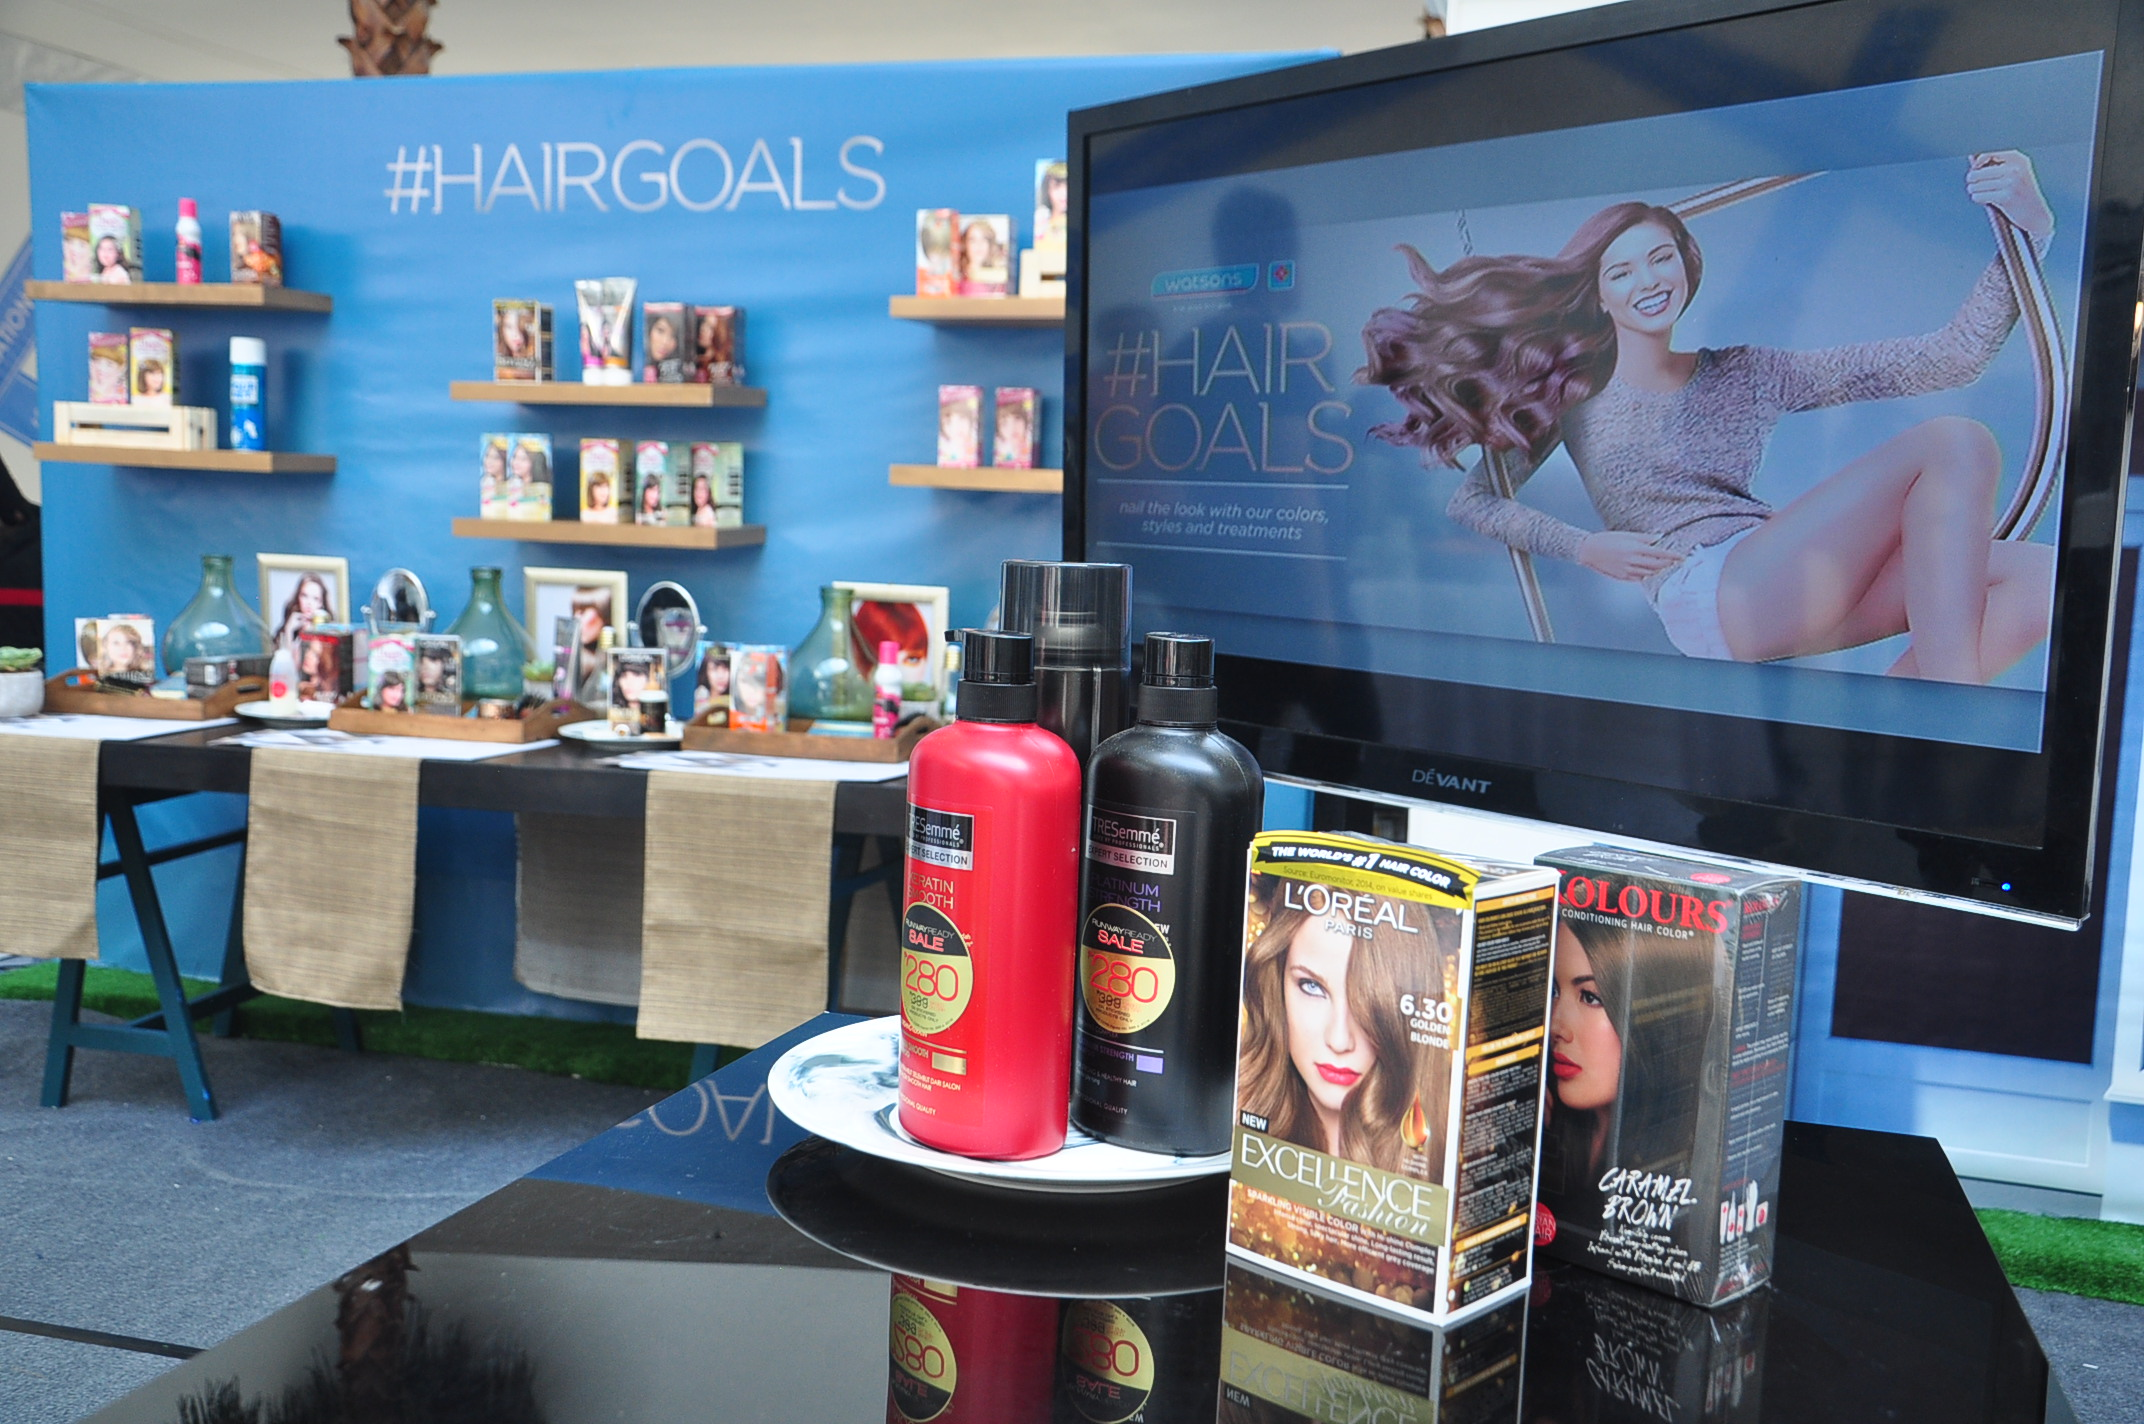 #WatsonsHairGoals event at the SM Mall of Asia last 19 May.